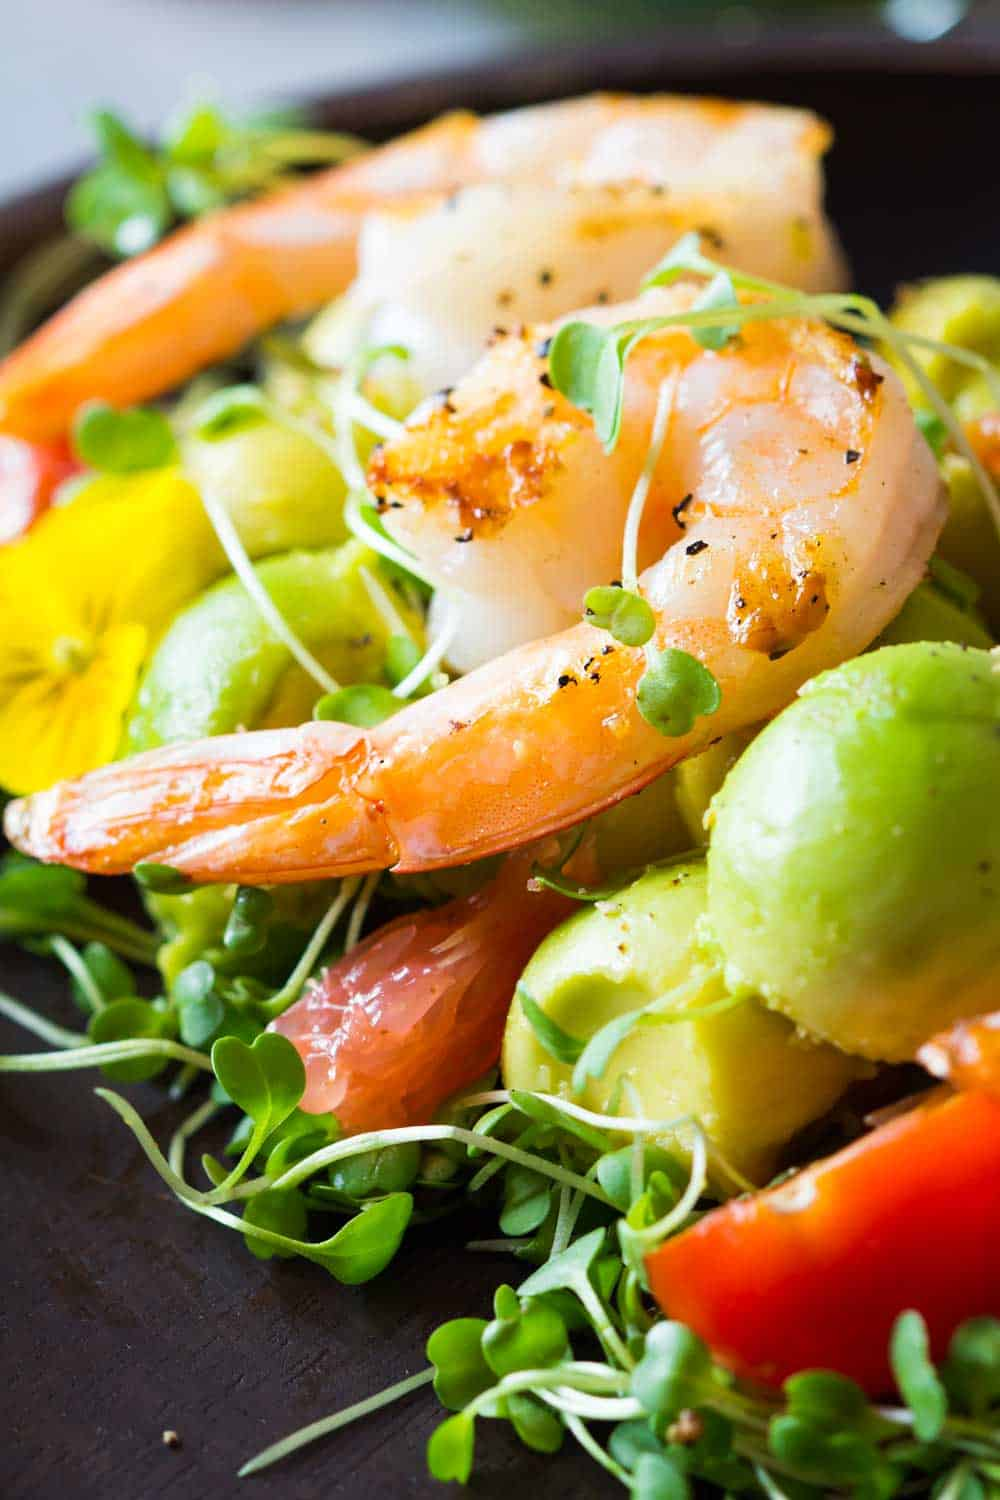 Texture of shrimp, avocado, tomato, arugula and grapefruit with cilantro dressing.